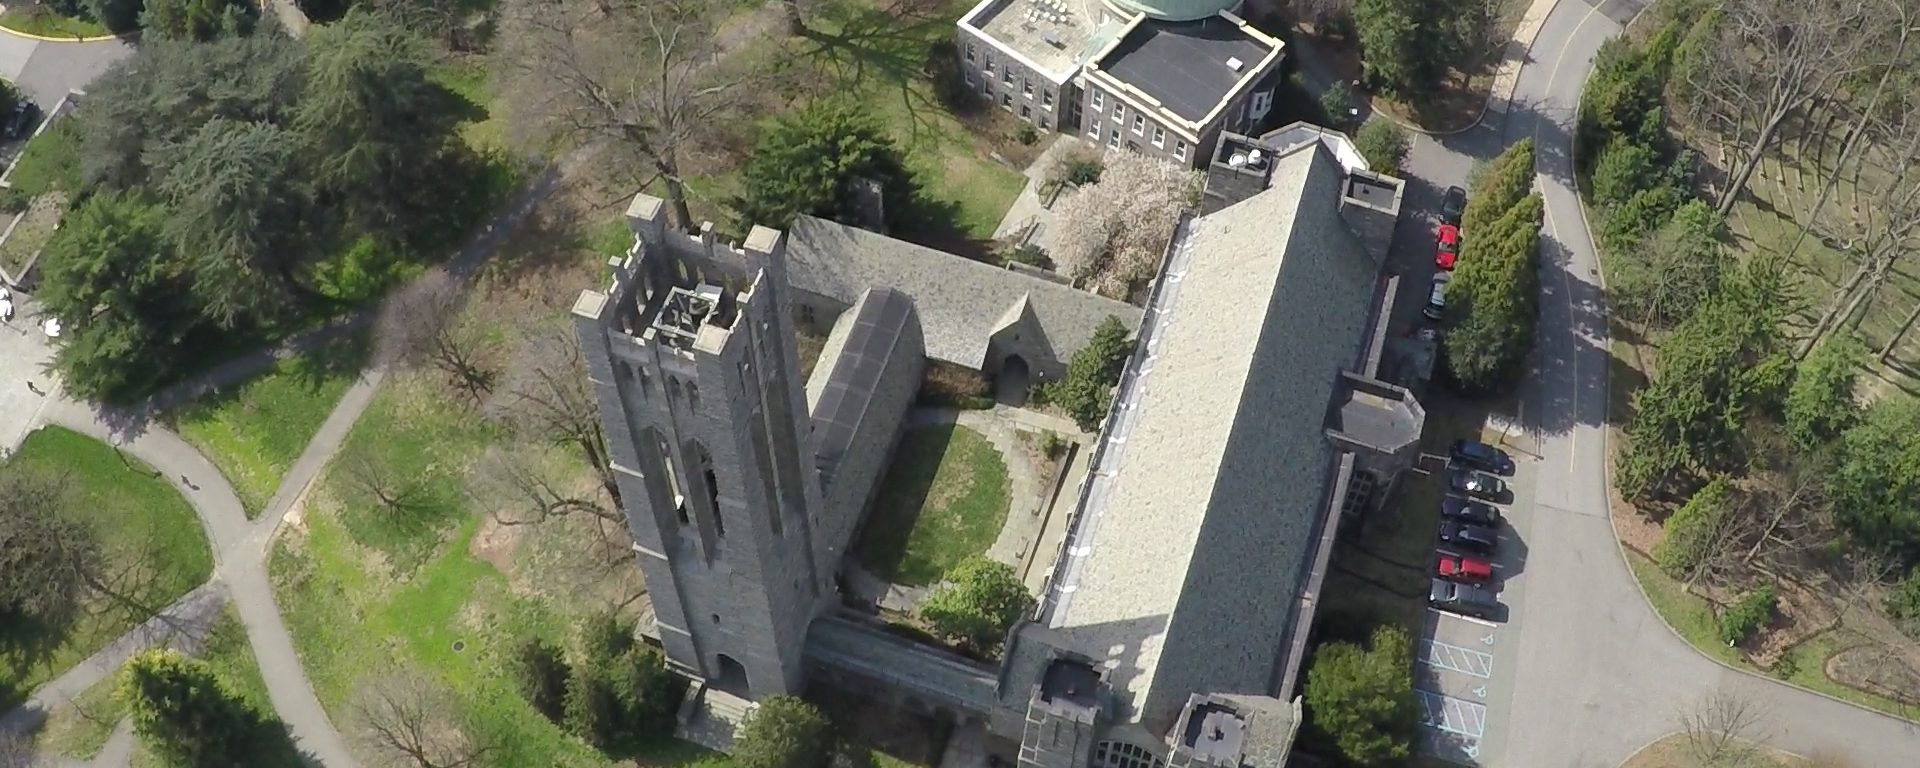 Quadcopters at Swarthmore – Swarthmore College ITS Blog